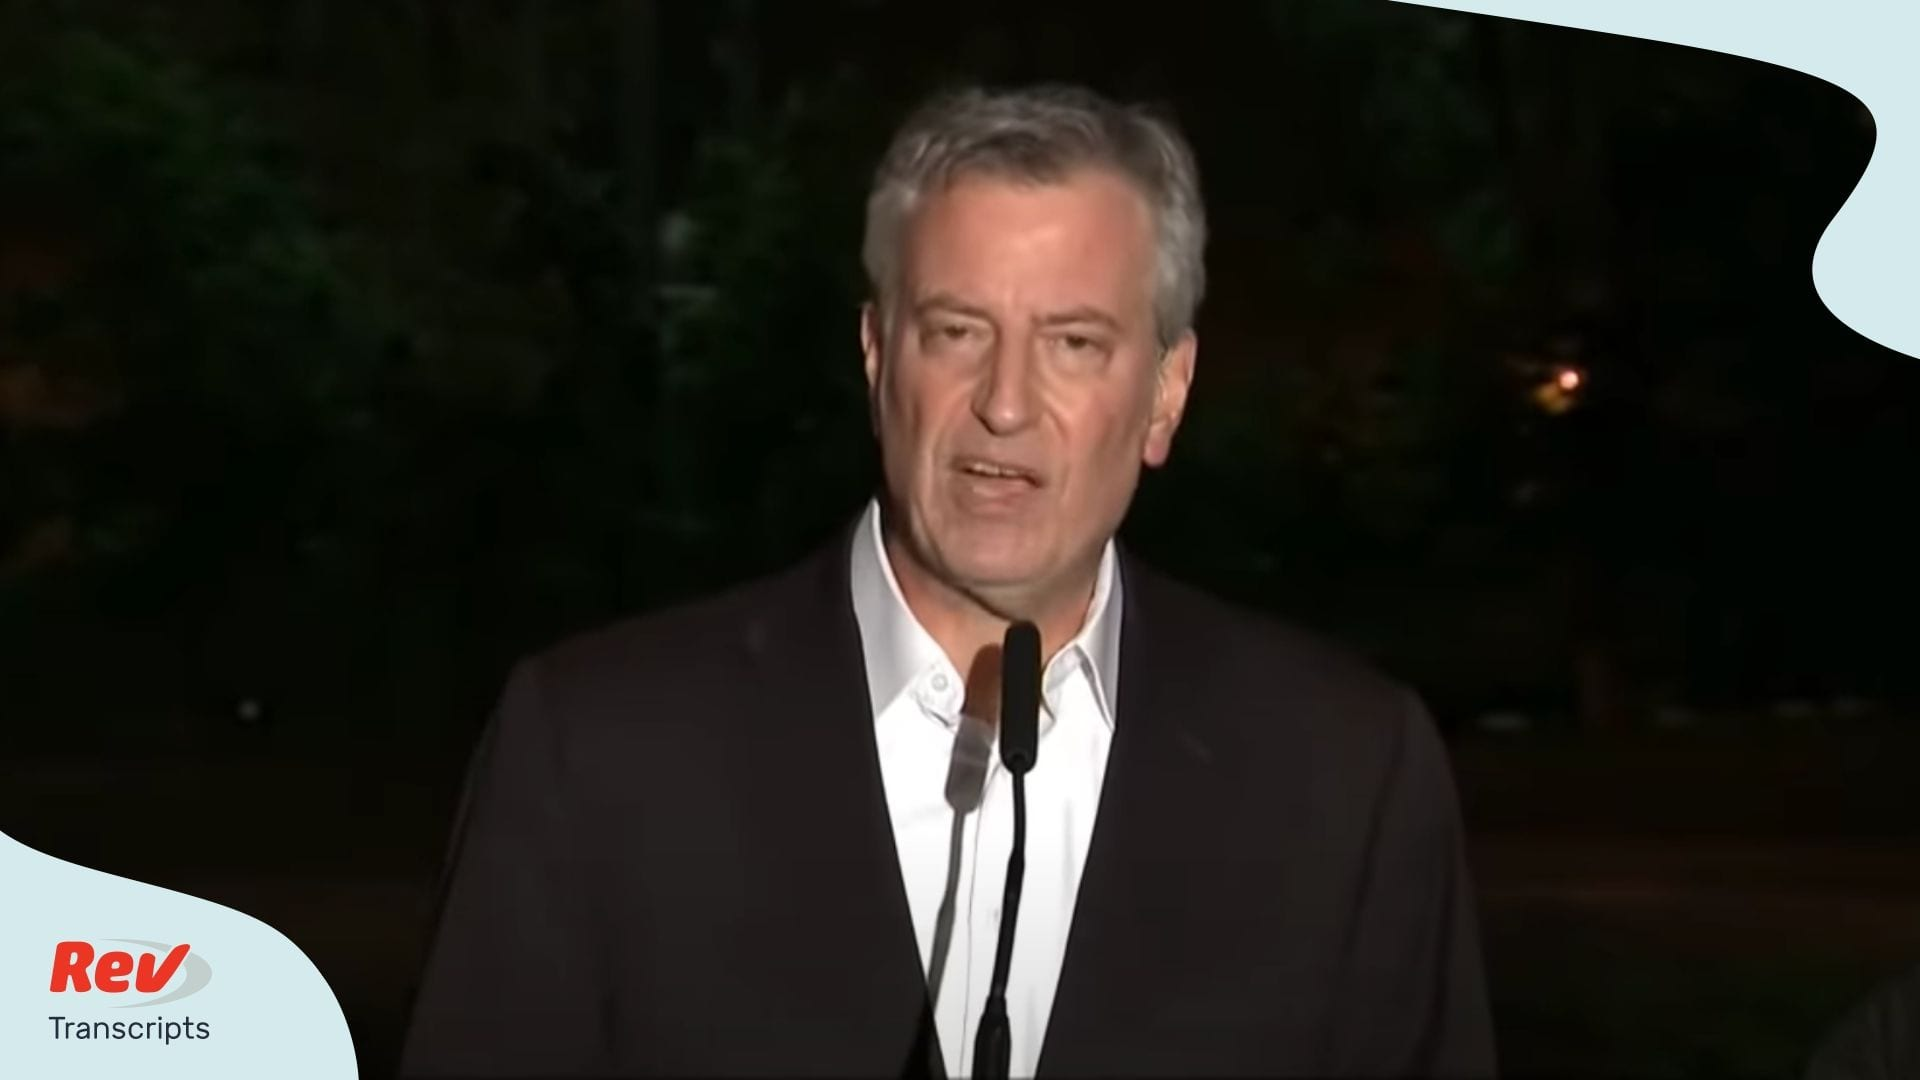 Bill de Blasio Speech During NYC Protests May 30